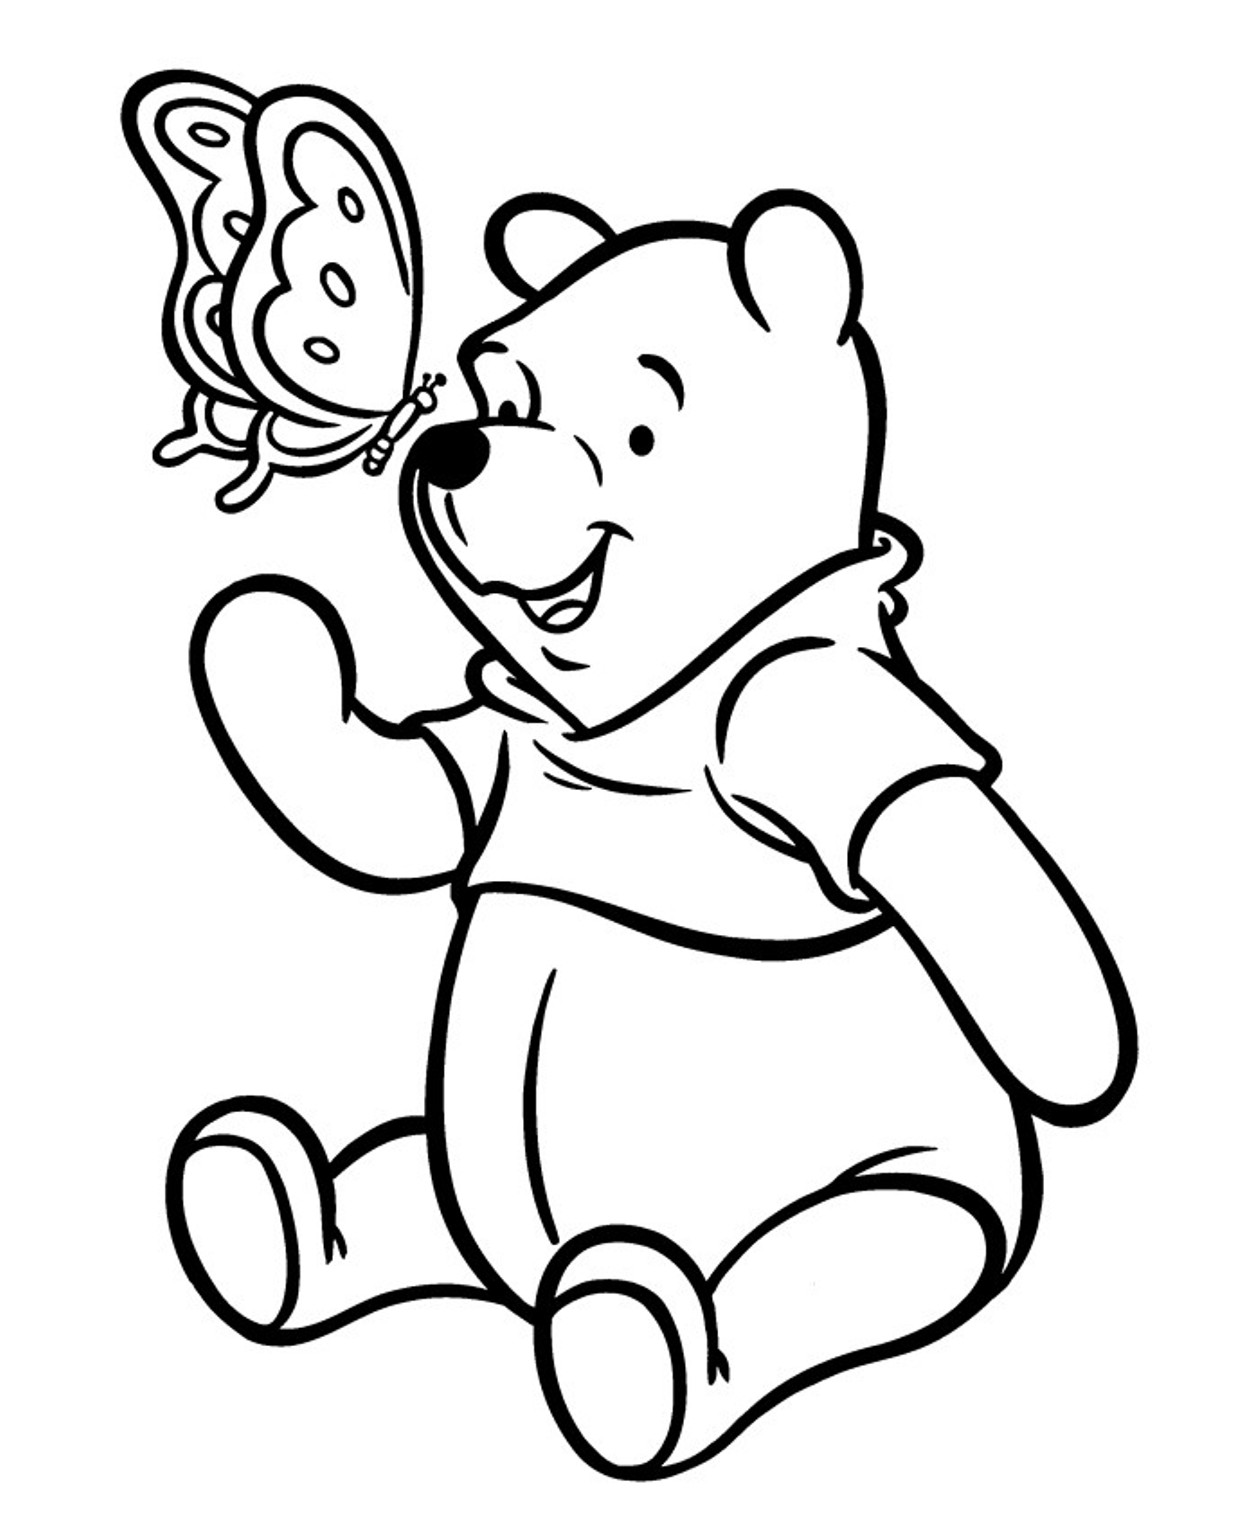 1260x1517 Baby Pooh Bear Coloring Pages Google Search